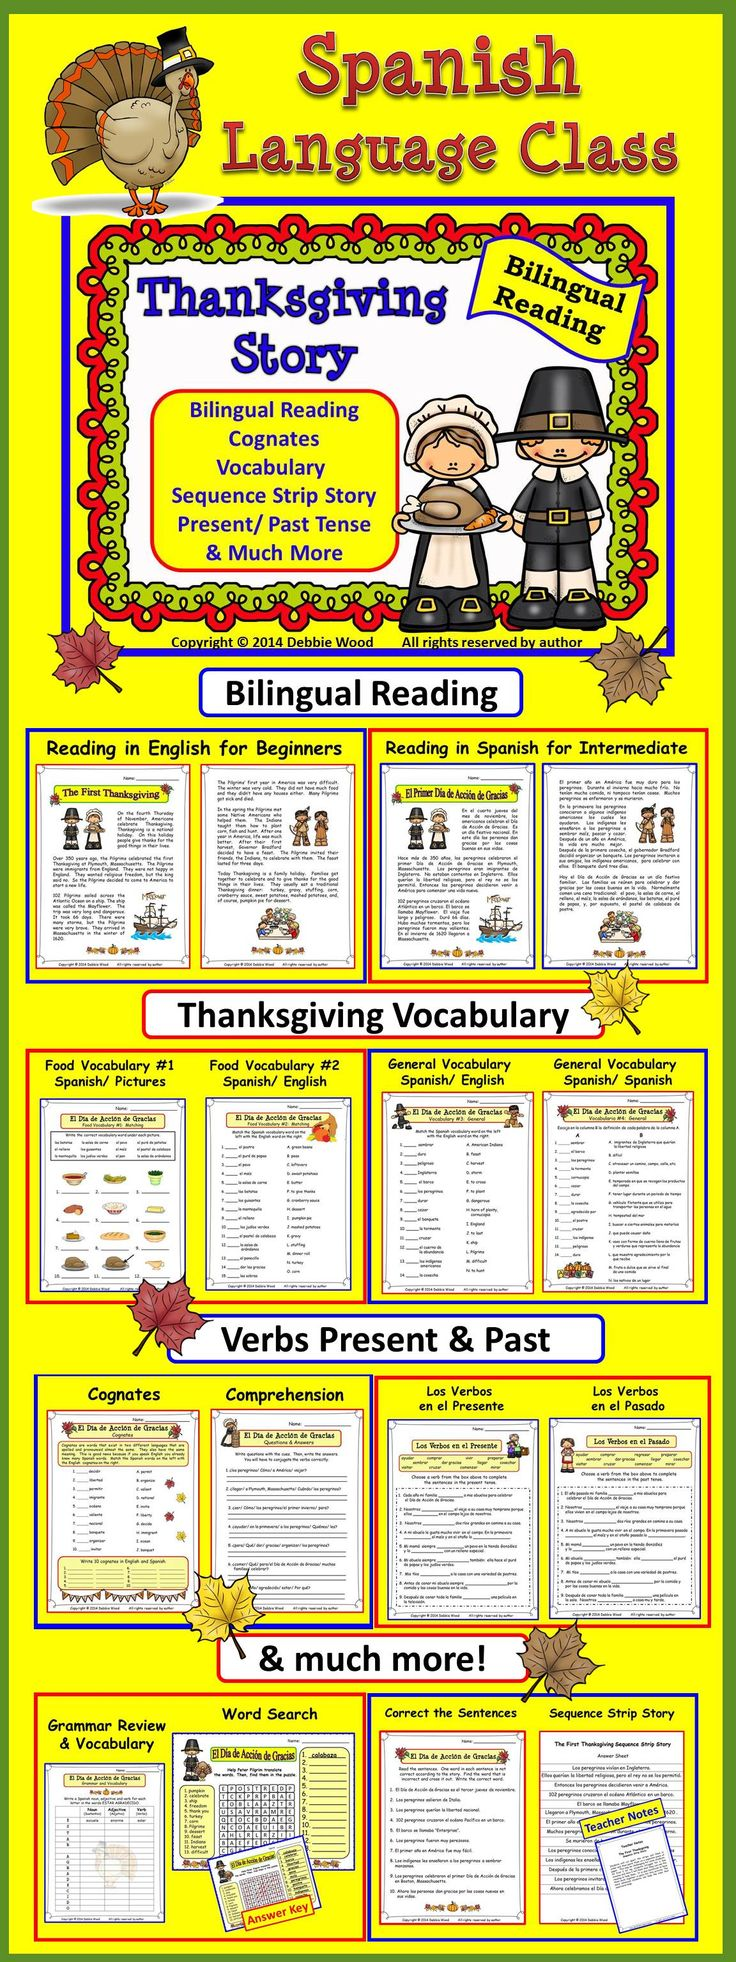 Spanish Thanksgiving (El Dia de Accion de Gracias) Bilingual Reading for the Spanish Language Class.  Includes vocabulary, cognates, present and past tense verbs, sequence strip story, word puzzles and more.